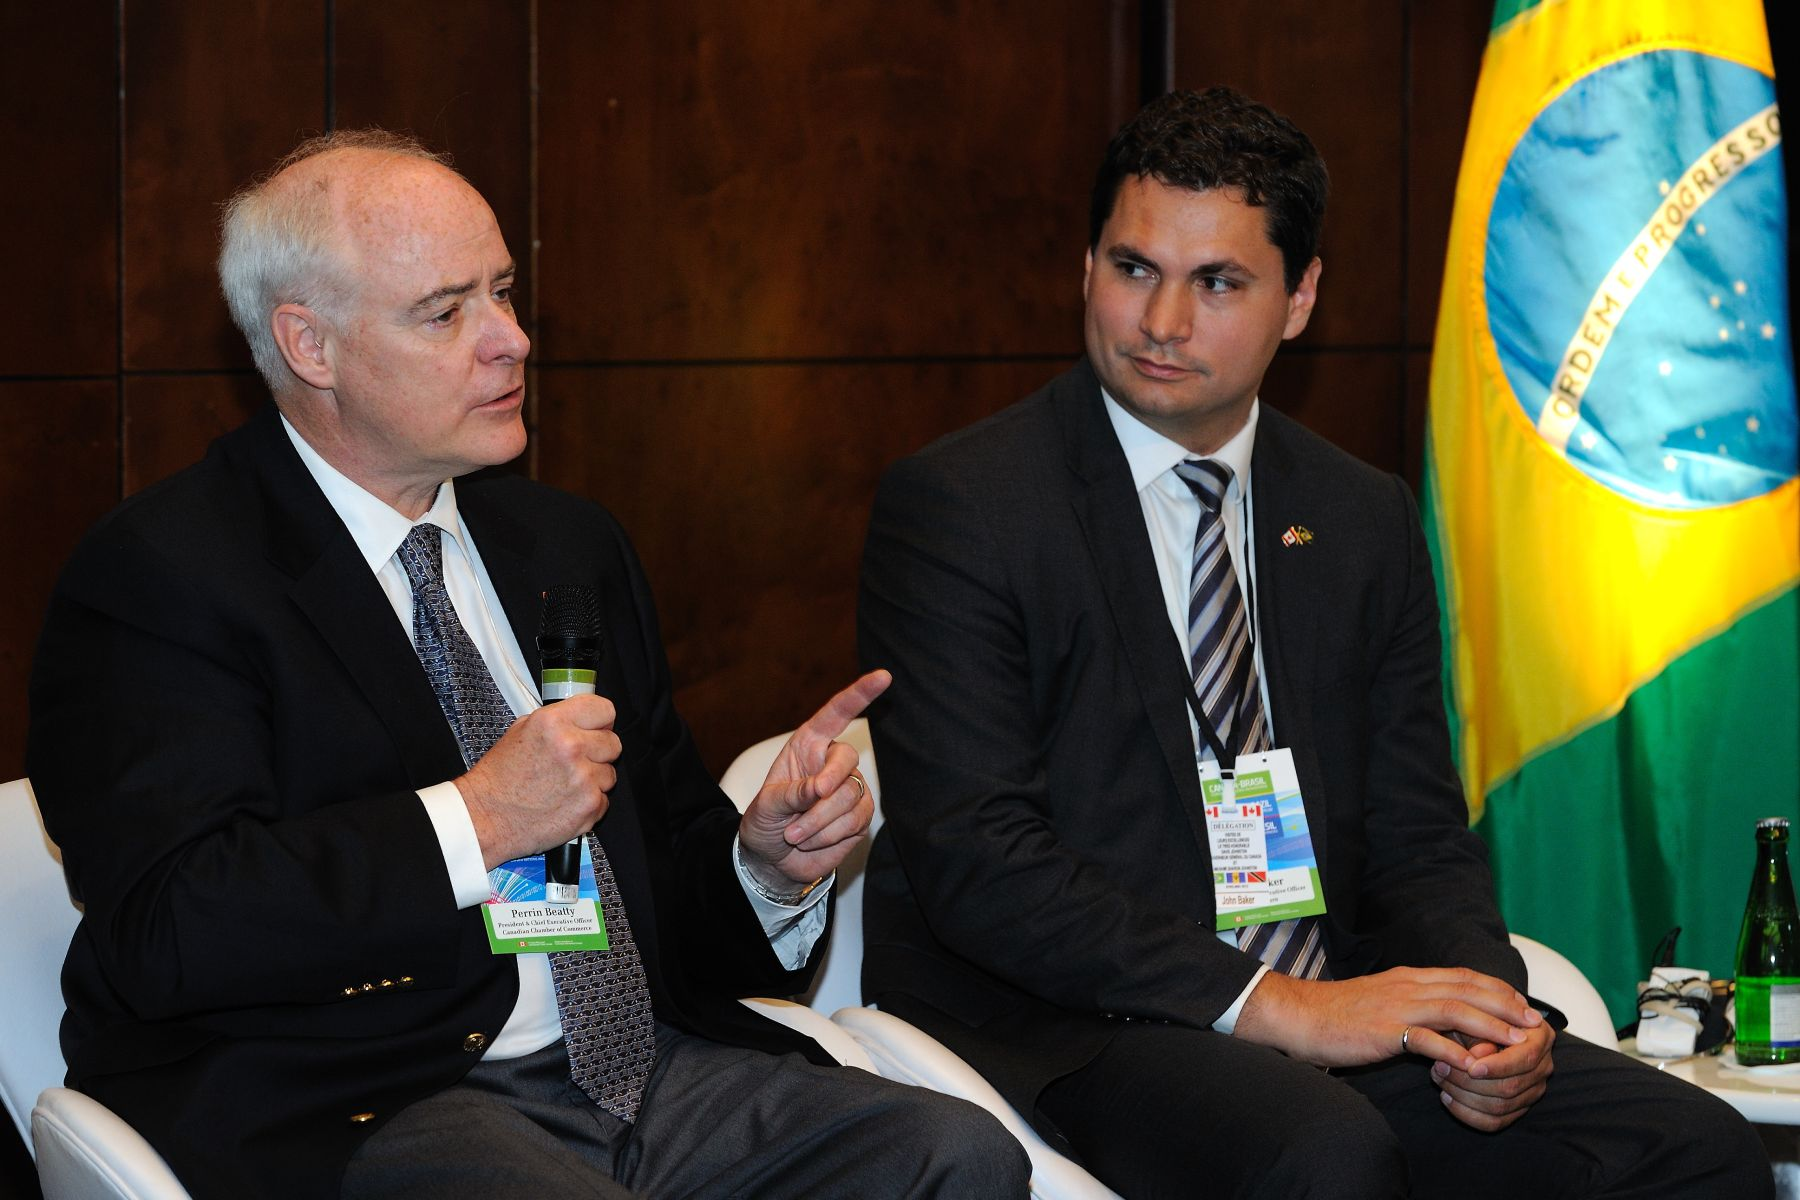 The Honourable Perrin Beatty, President and Chief Executive Officer of the Canadian Chamber of Commerce and delegate also took the microphone. The Canada-Brazil Innovation Nations Forum also aims to stimulate science and technology collaboration between Canada and Brazil.